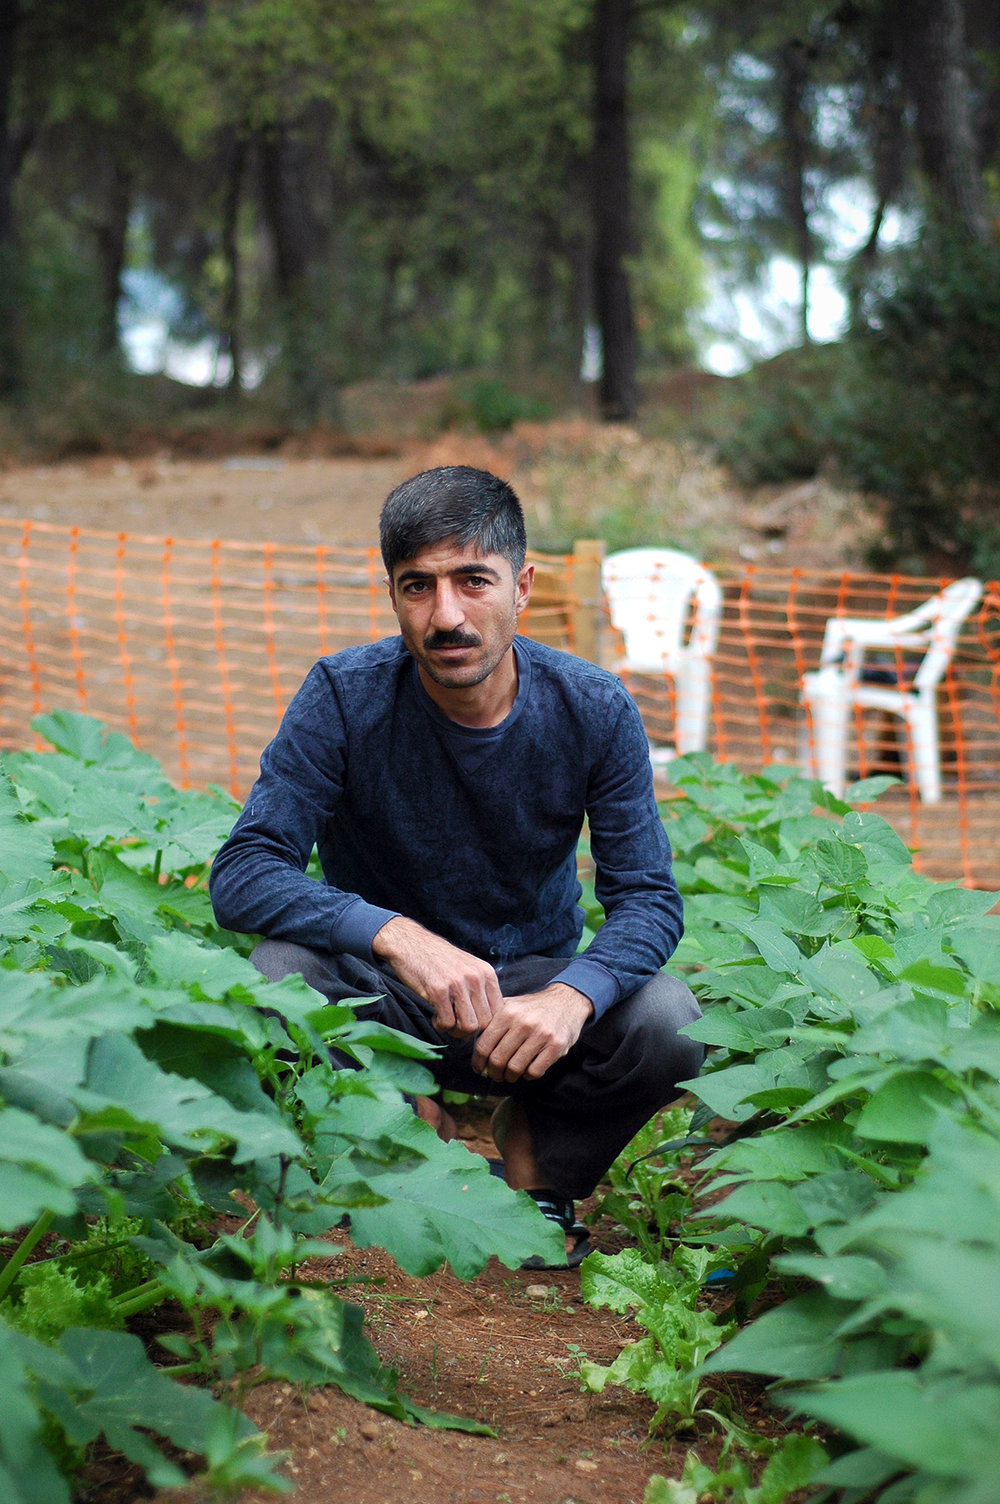 "Mohammed, 33, from Aleppo, Syria Mohammed never considered himself much of a gardener, though his family had a plot of land in Aleppo that grew beans, tomatoes, and zucchini. But after several months at Ritsona refugee camp feeding his kids the same packaged croissants and juice boxes day in and day out, he grew frustrated. ""The food the military brings is very expensive. Why not bring tomatoes and potatoes? With those, we can eat for a week,"" he says. In midsummer, Mohammed obtained seeds and dug out a small patch of the dry soil behind the camp. He planted onions, peppers, squash, and other nutritious vegetables that his family commonly ate back home. He pulls up a photo on his phone of a bowl of green beans. ""Last week we had one kilo,"" he says. Photo: Allison Voigts/Lighthouse Relief. Posted Oct 24, 2016"